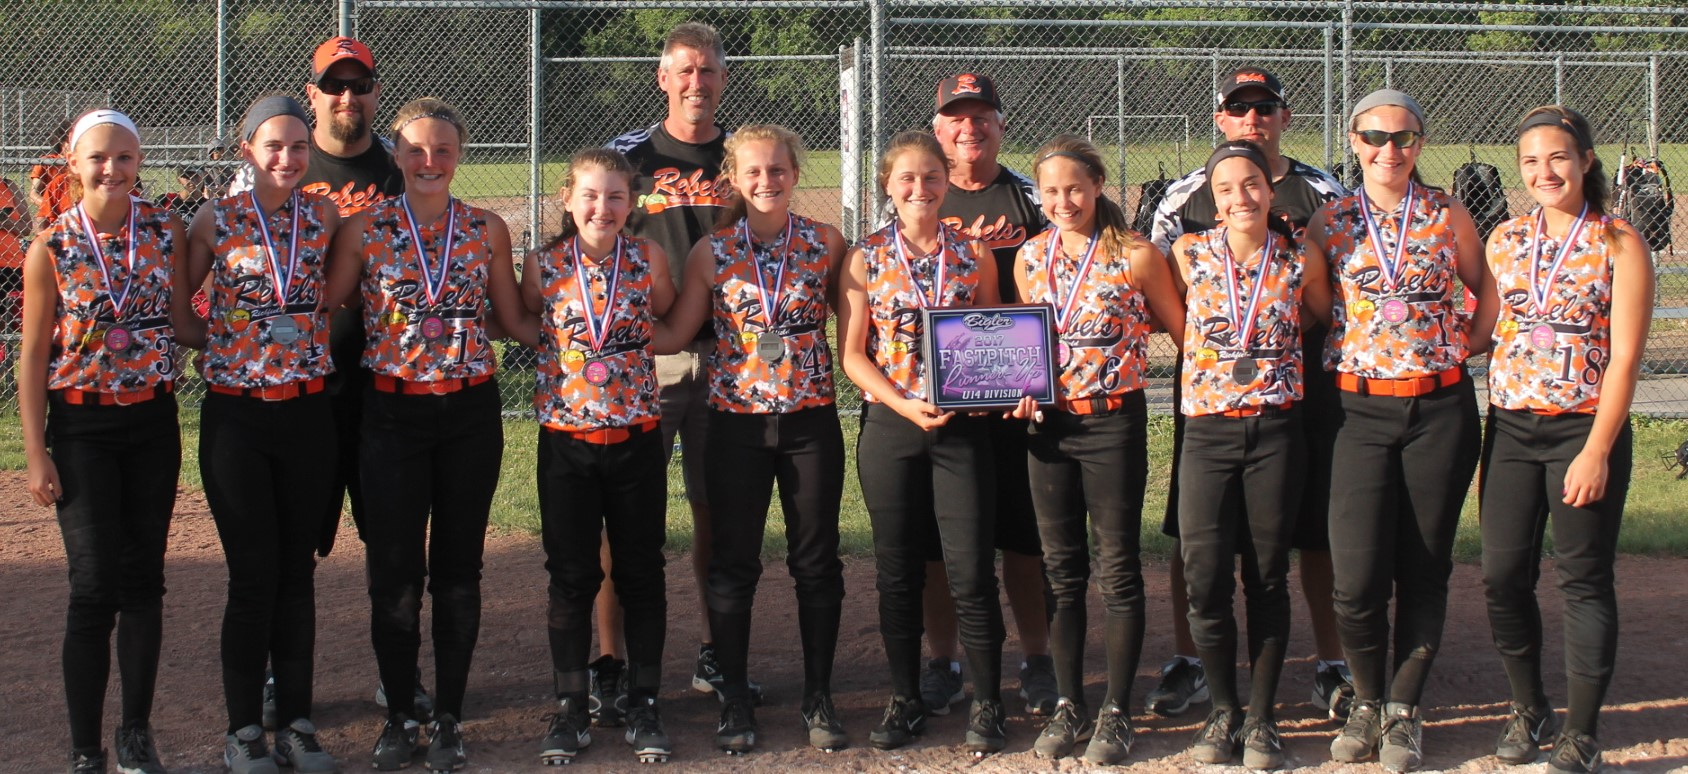 bigler girls June 15-17, 2018 u12, u14 rotary park and riverbarn park in mequon only  $45000 per team ($25 discount if you register for more than one tournament.